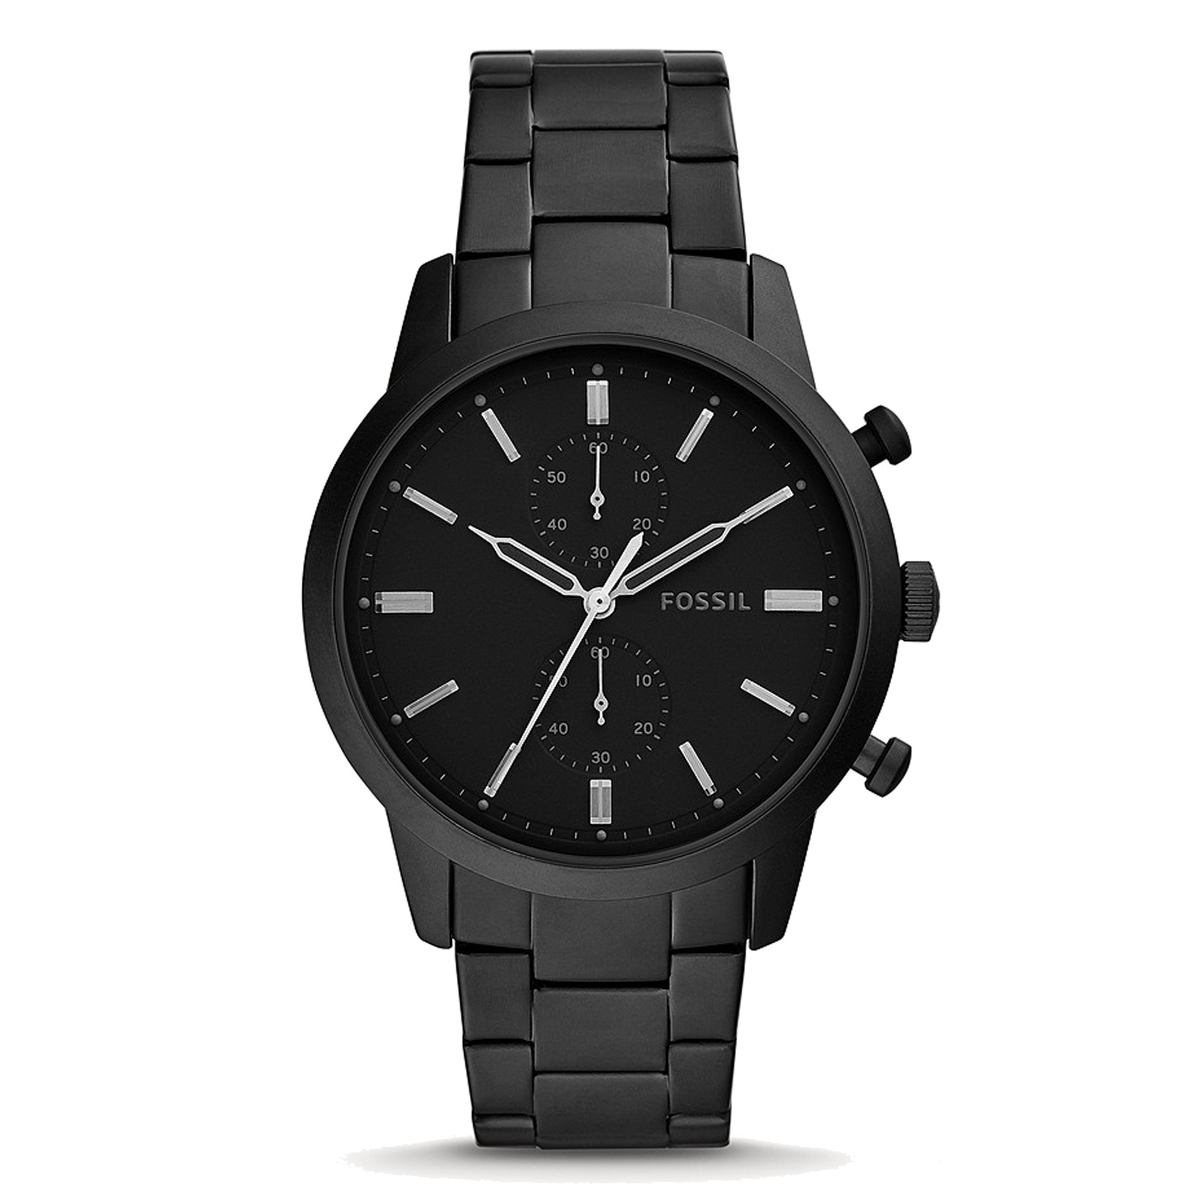 Fossil Watch Townsman: Chronograph Black Stainless Steel